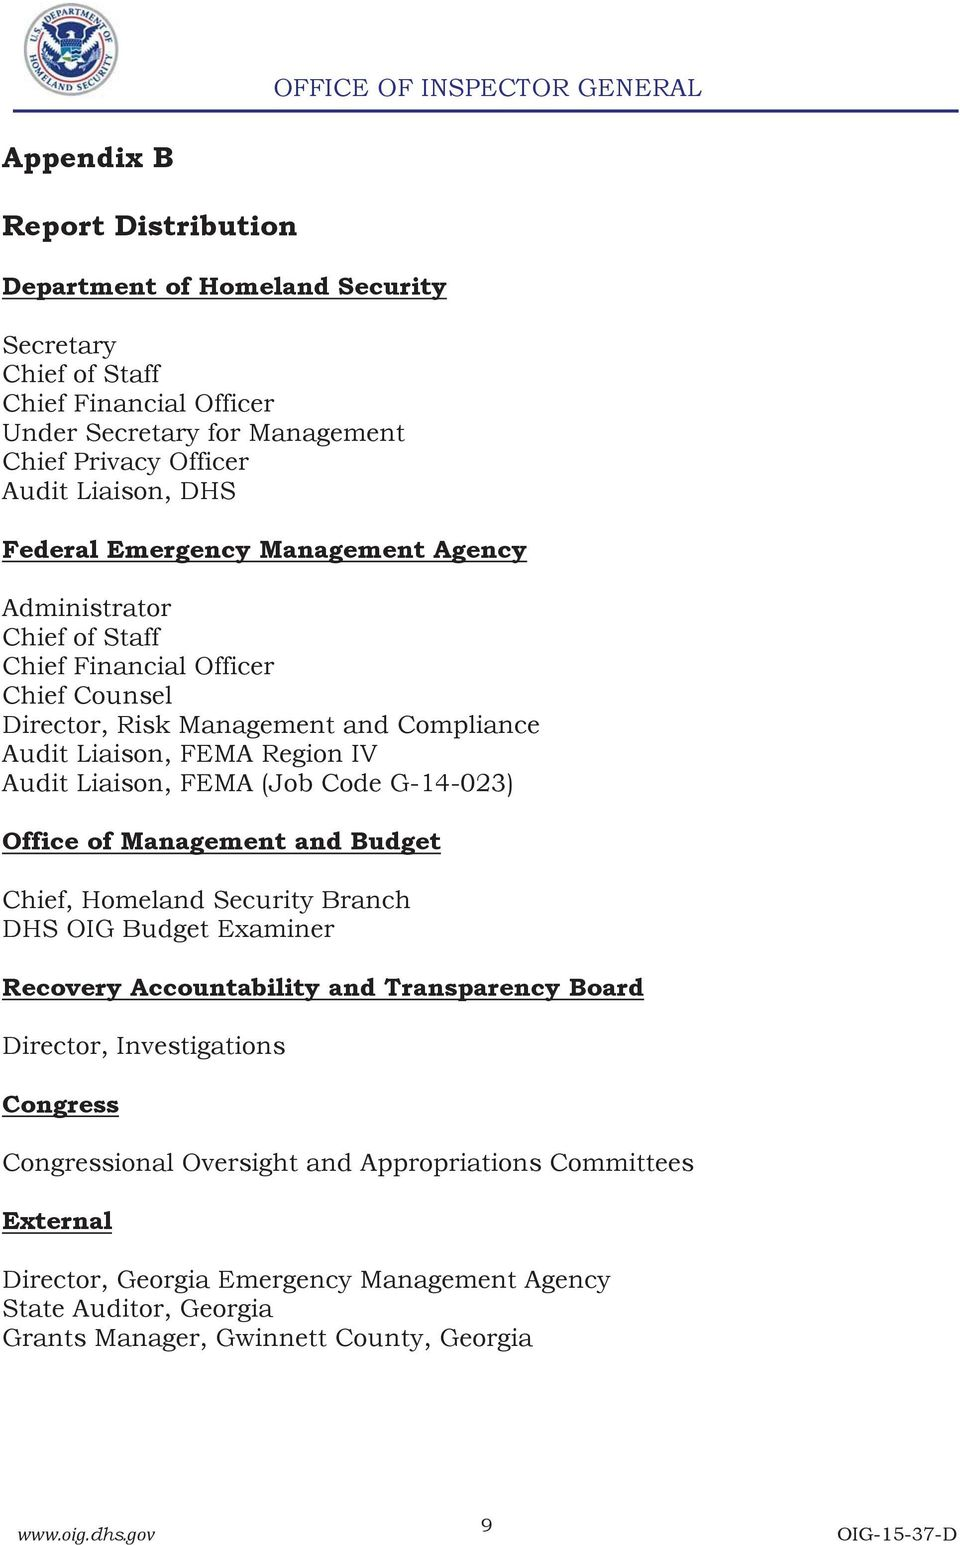 Audit Liaison, FEMA (Job Code G-14-023) Office of Management and Budget Chief, Homeland Security Branch DHS OIG Budget Examiner Recovery Accountability and Transparency Board Director,